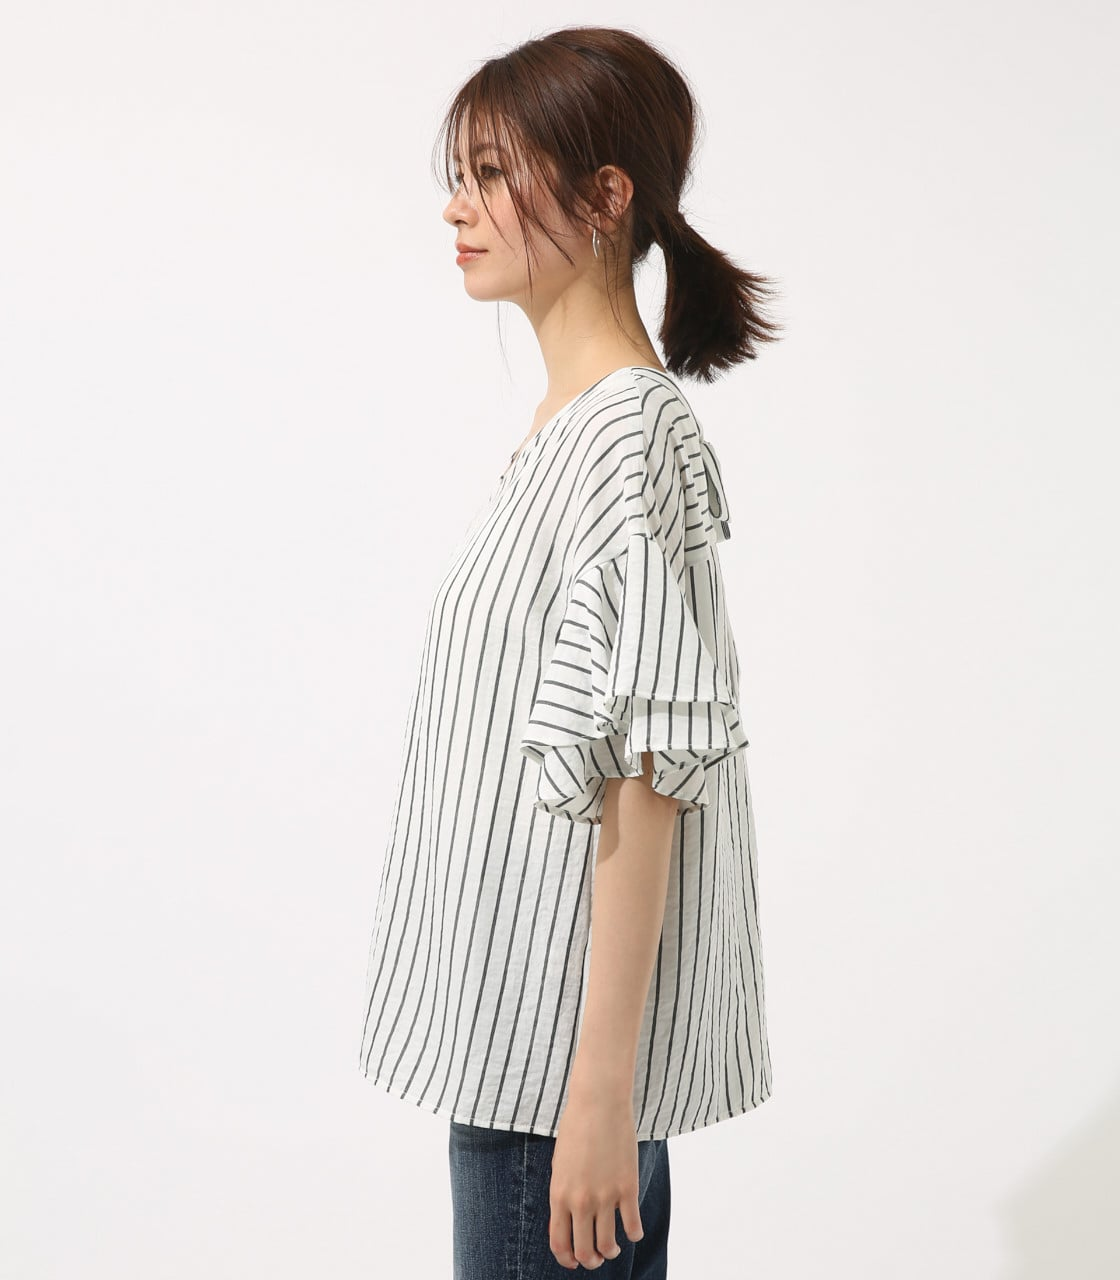 【AZUL BY MOUSSY】バックリボンフリルブラウス 詳細画像 柄WHT 6